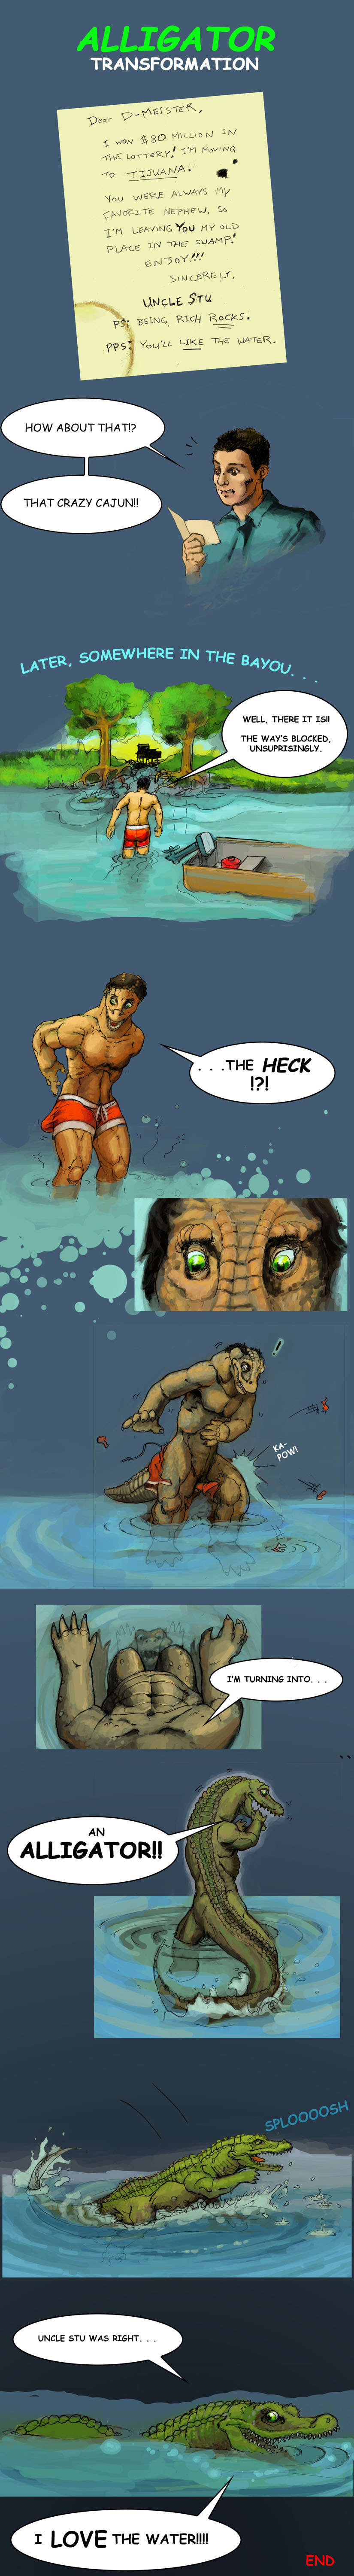 Alligator Transformation by Cayuga